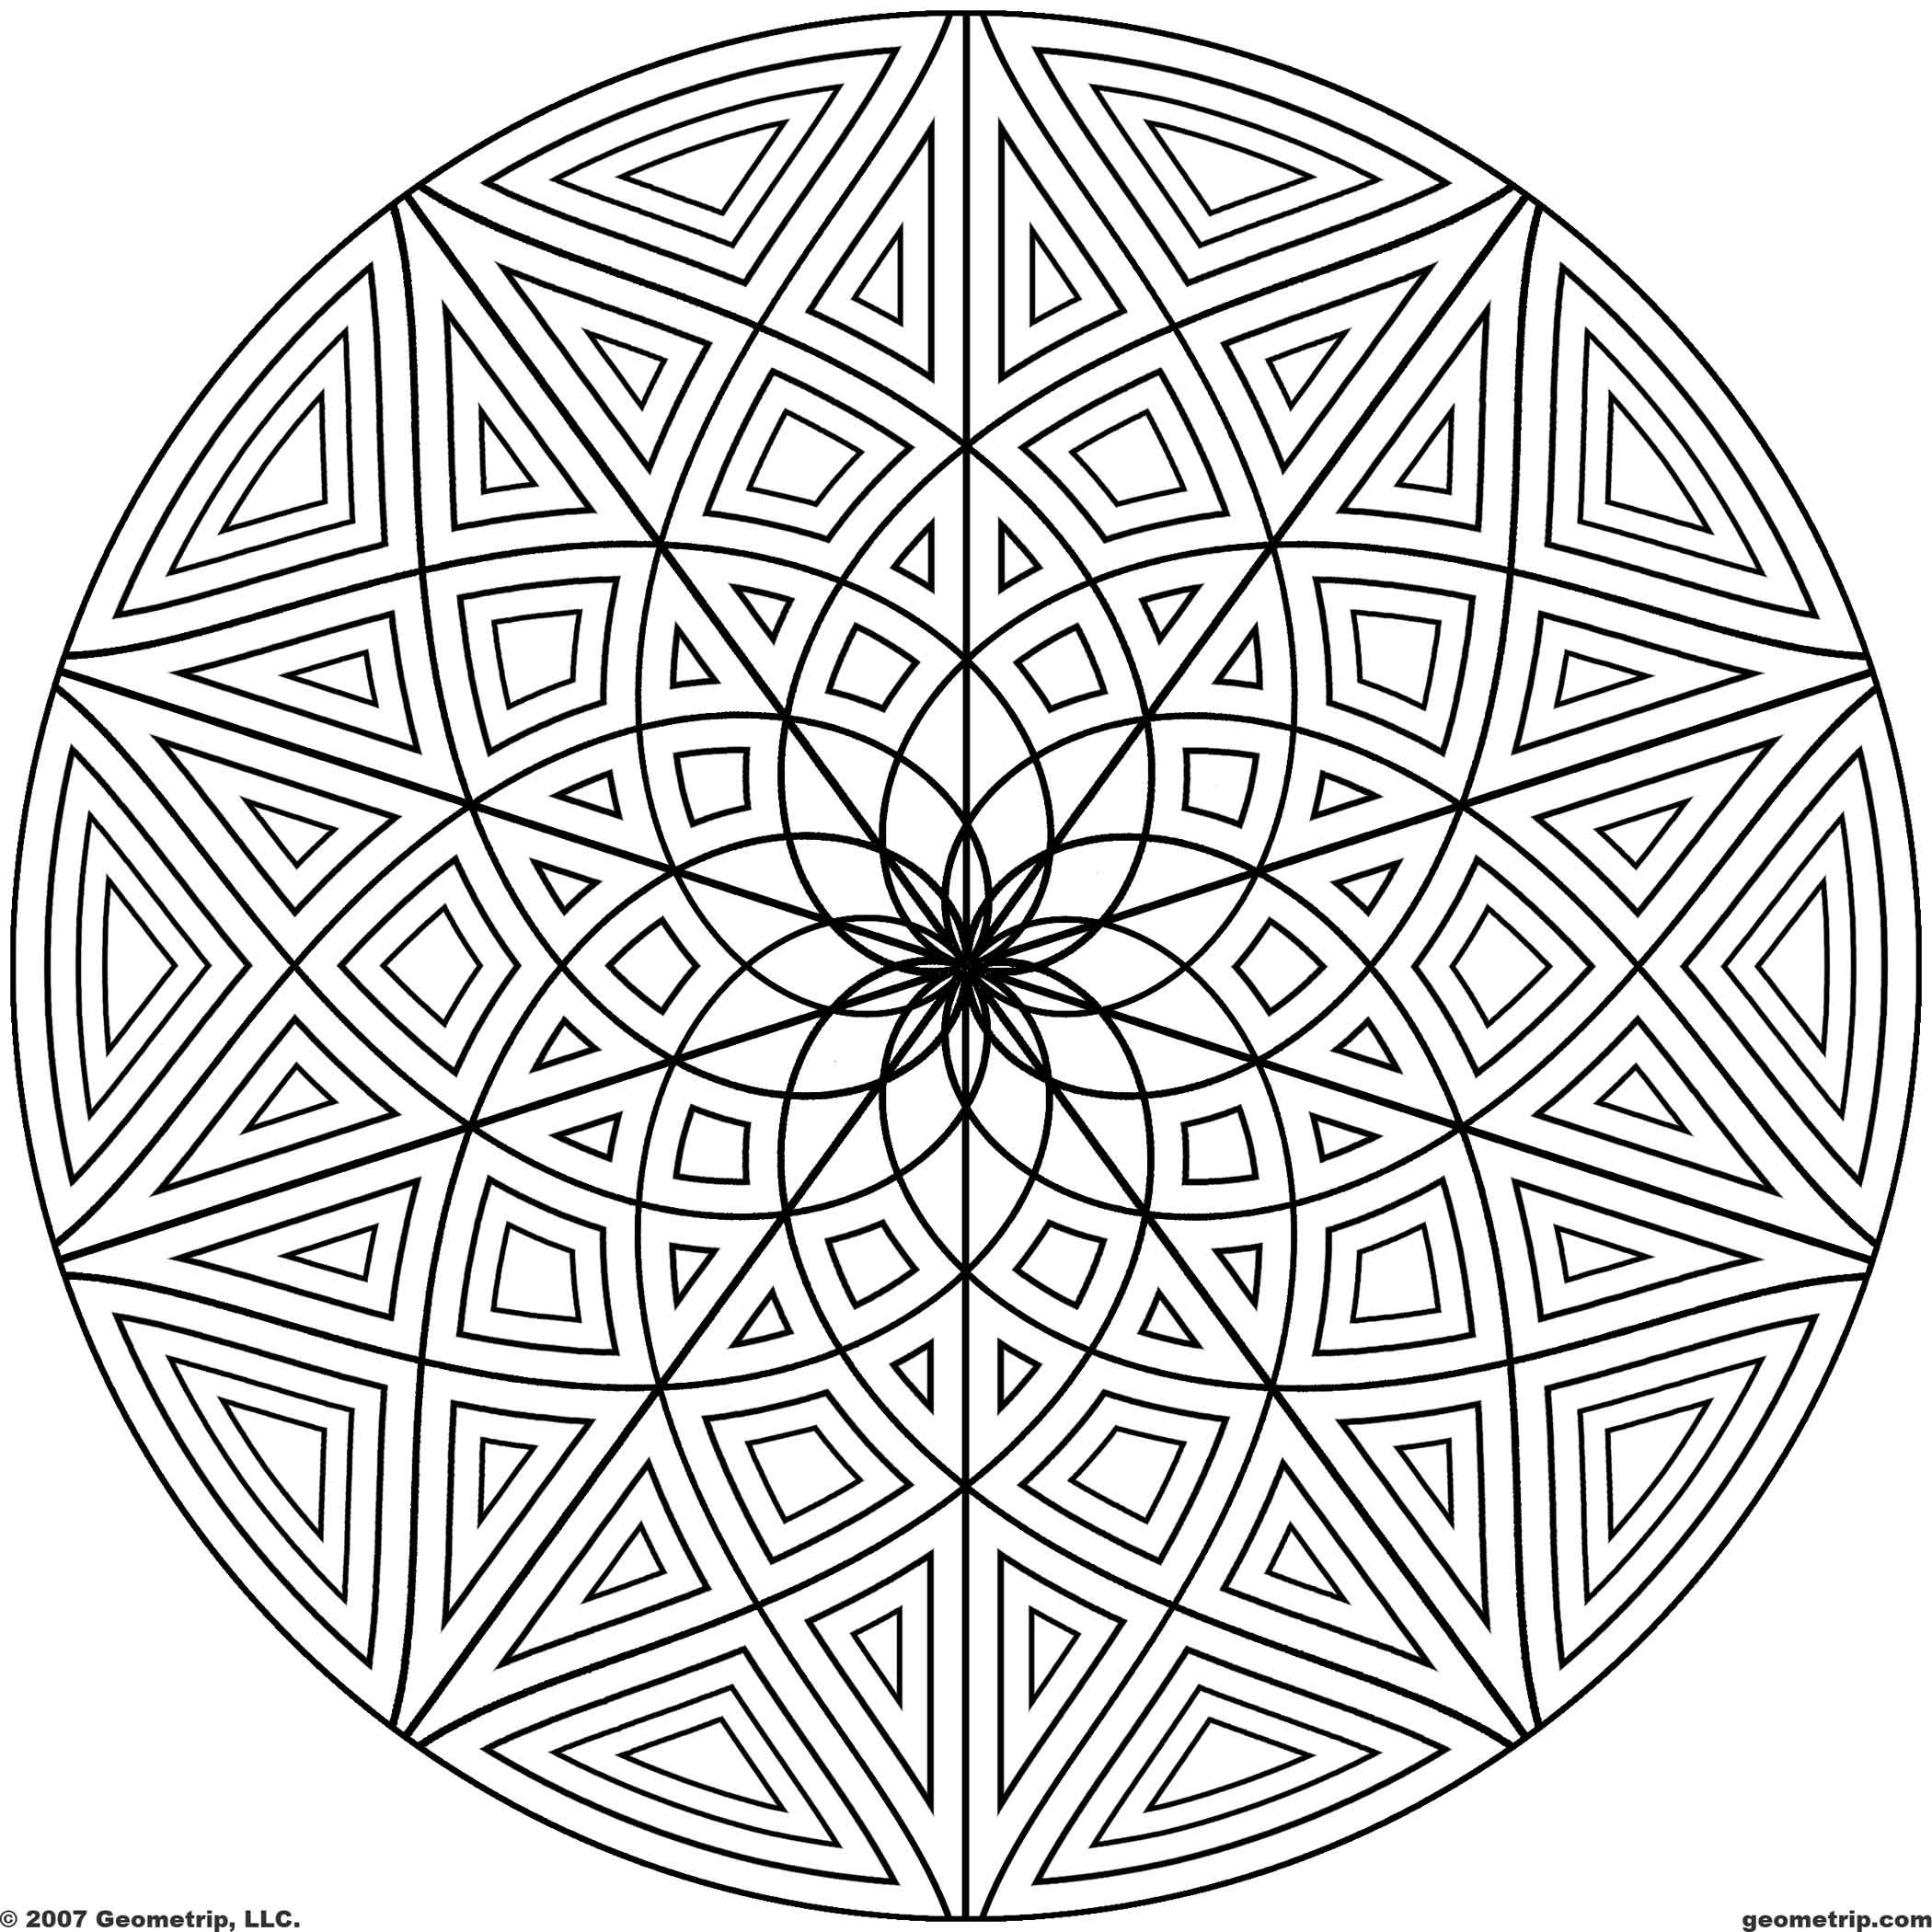 Best ideas about Geometric Coloring Pages For Adults . Save or Pin Geometric Design Coloring Pages Bestofcoloring Now.